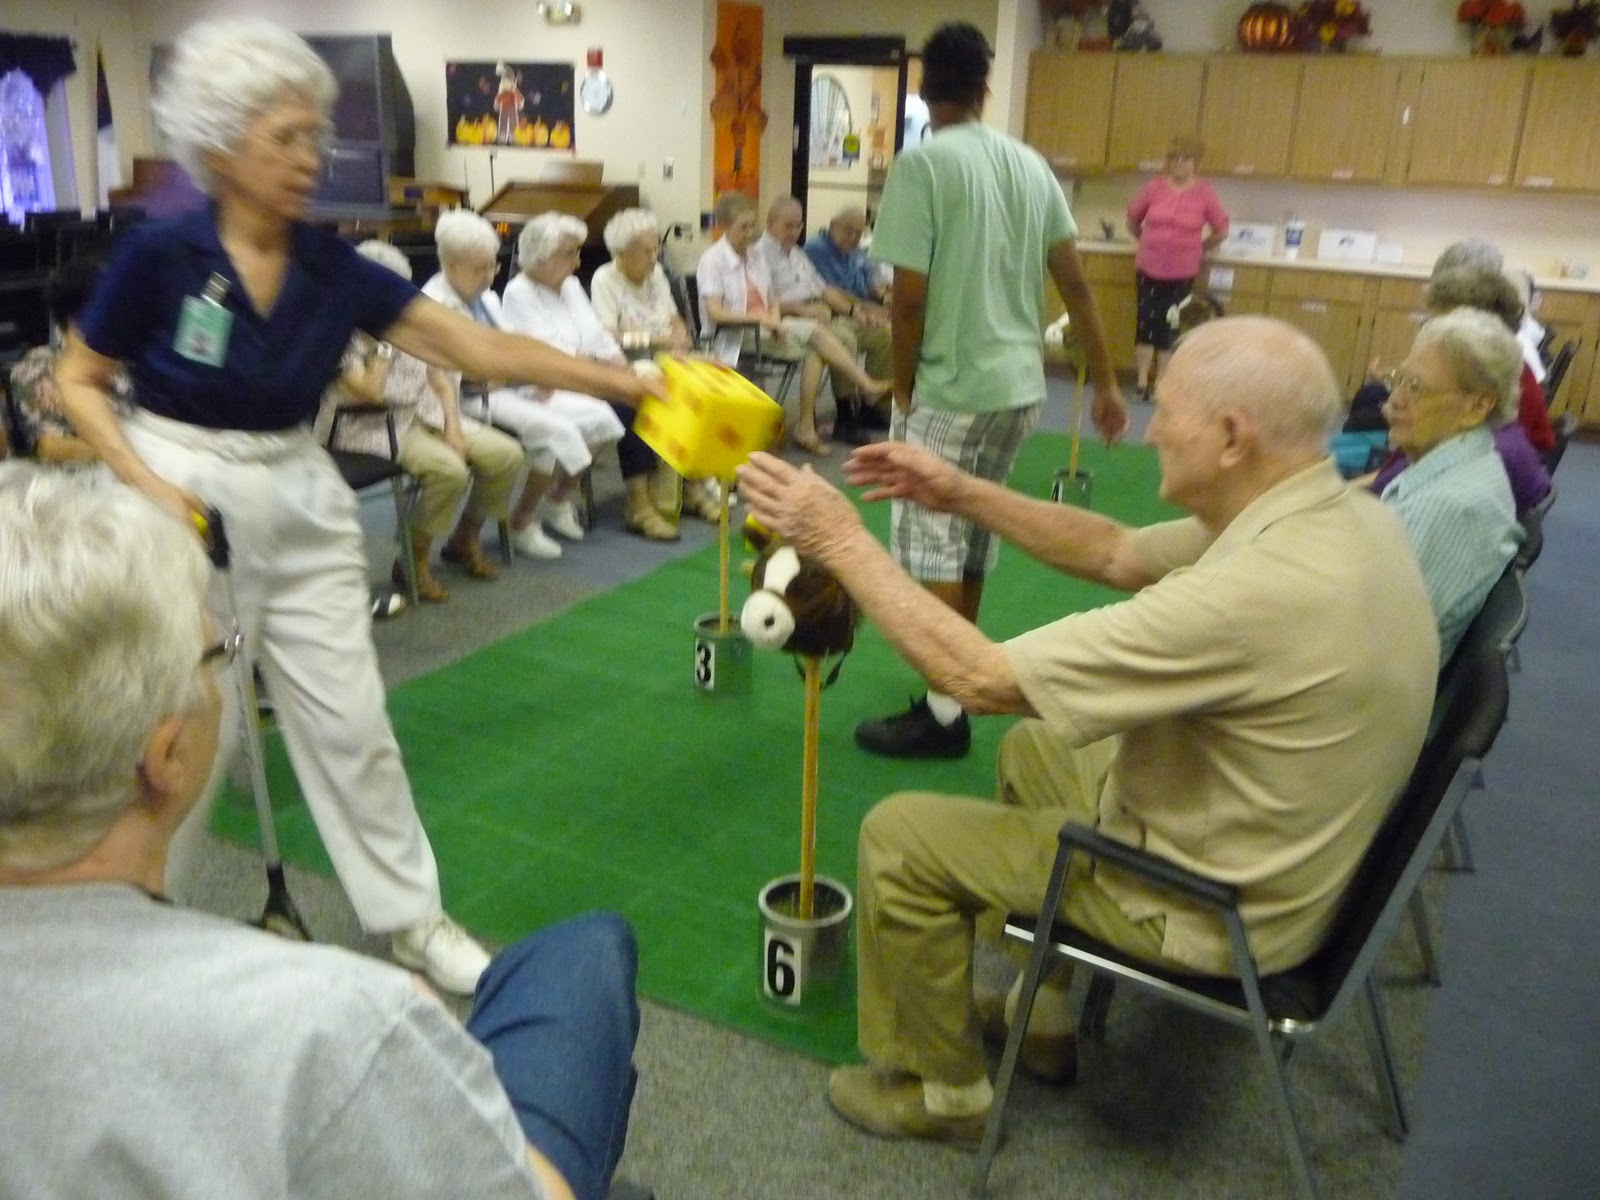 Activity director craft event ideas games for Seniors house